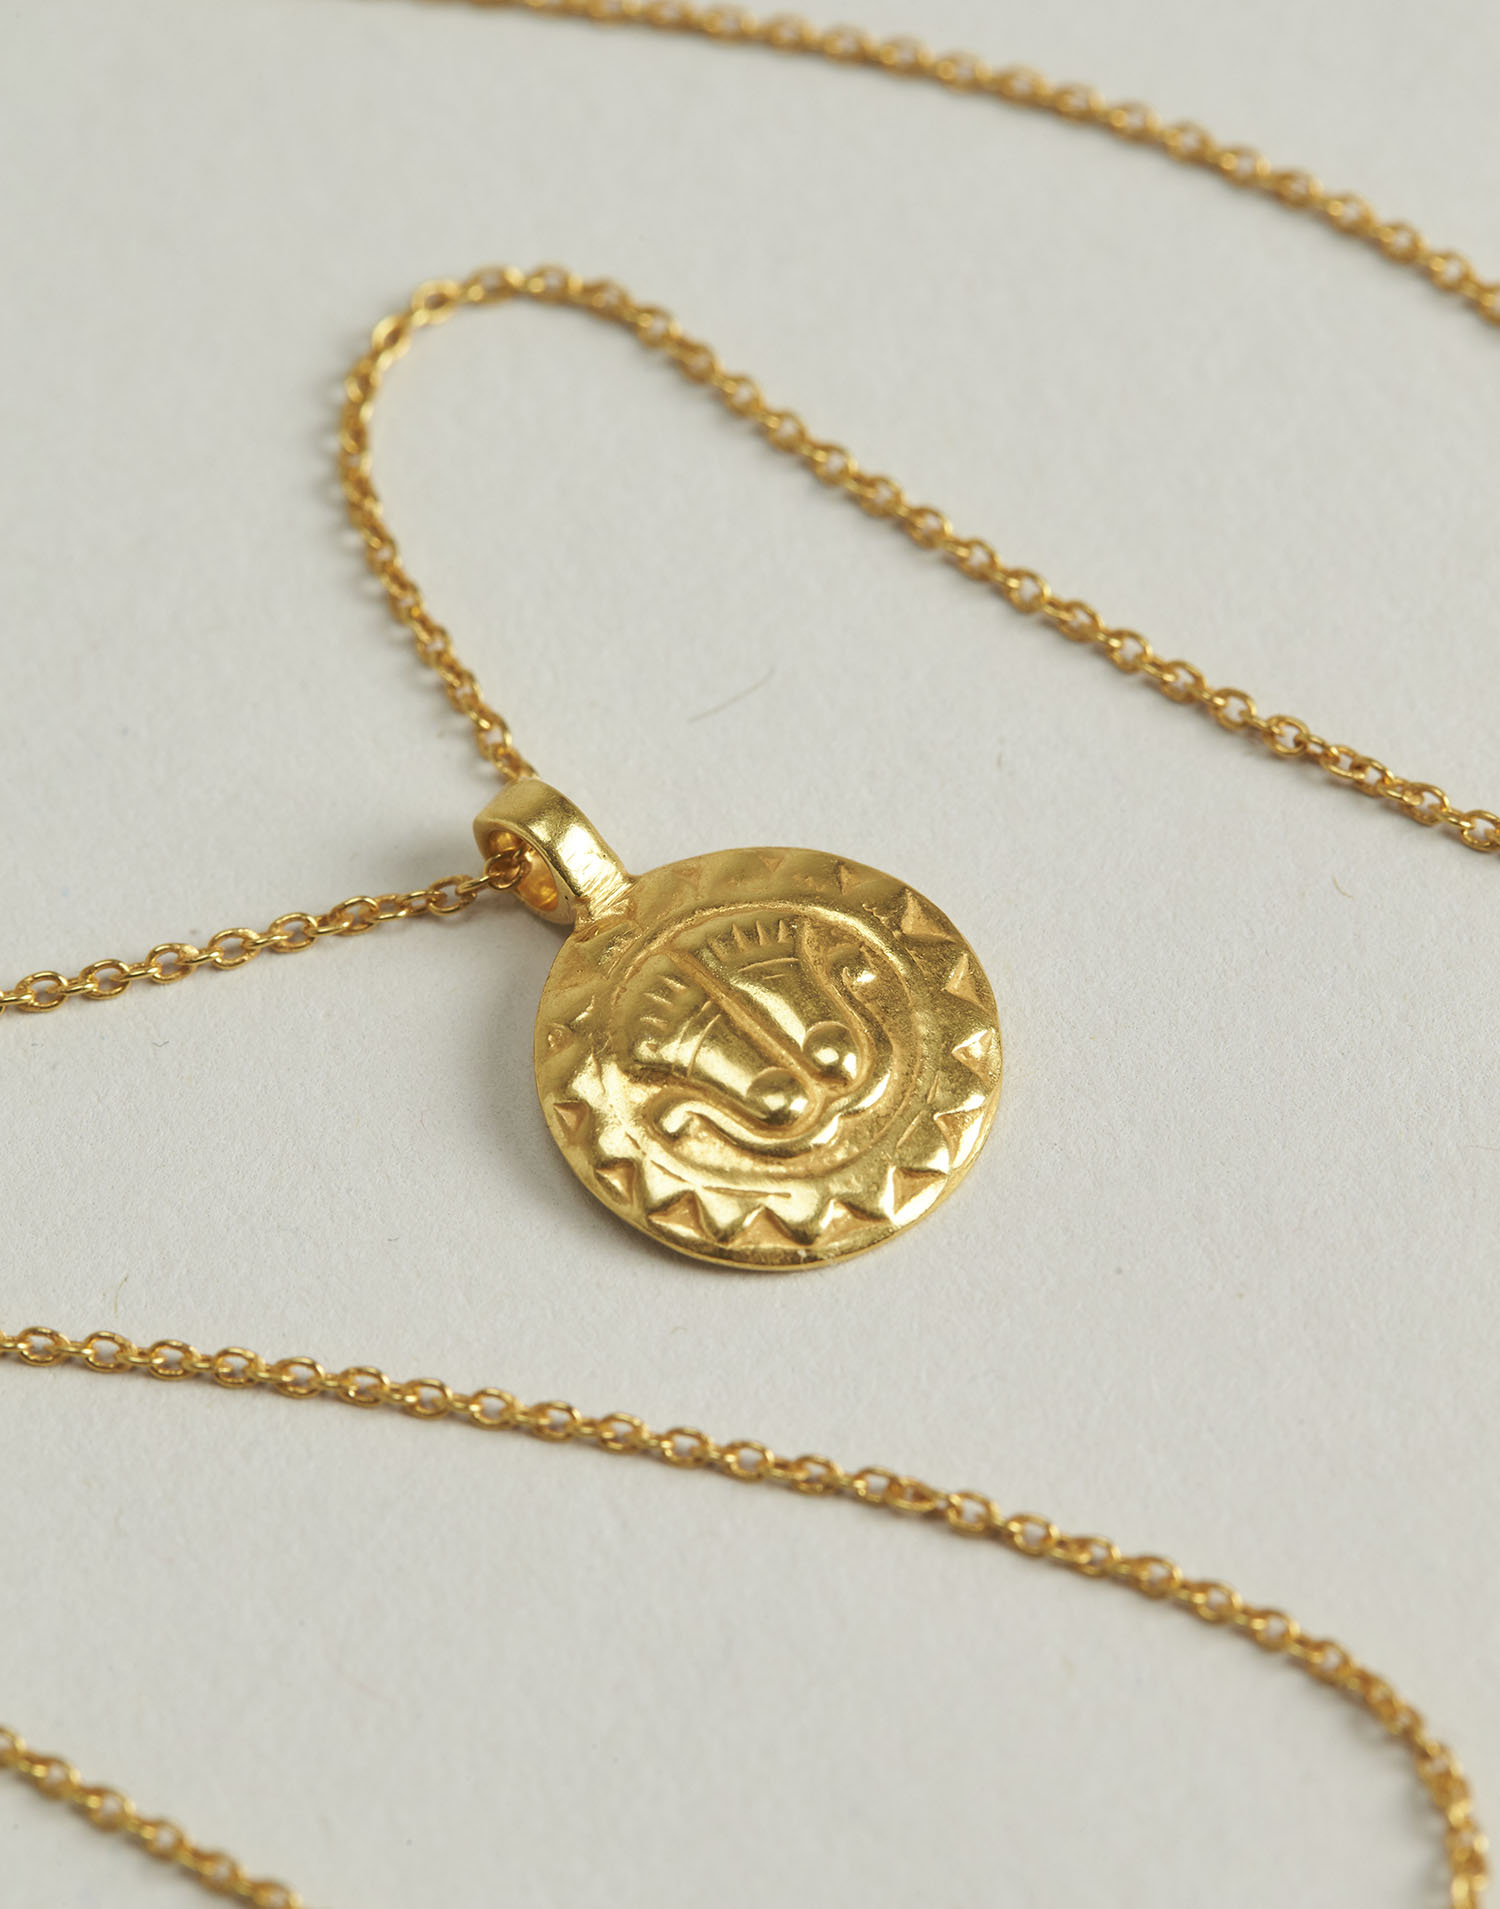 Gilded indian medal necklace